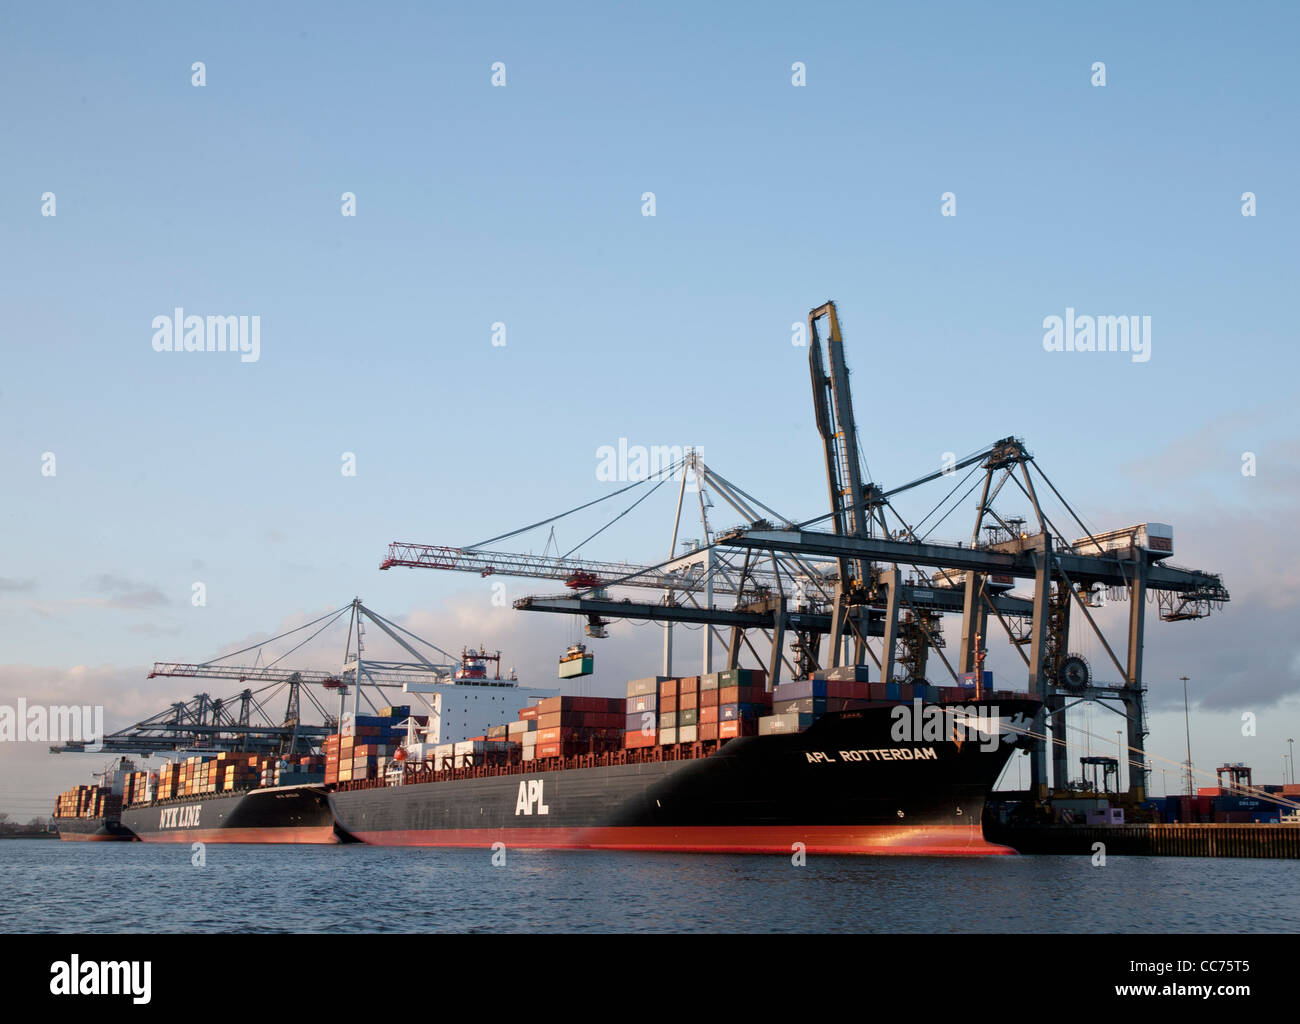 Container ships loading in the port of Southampton - Stock Image